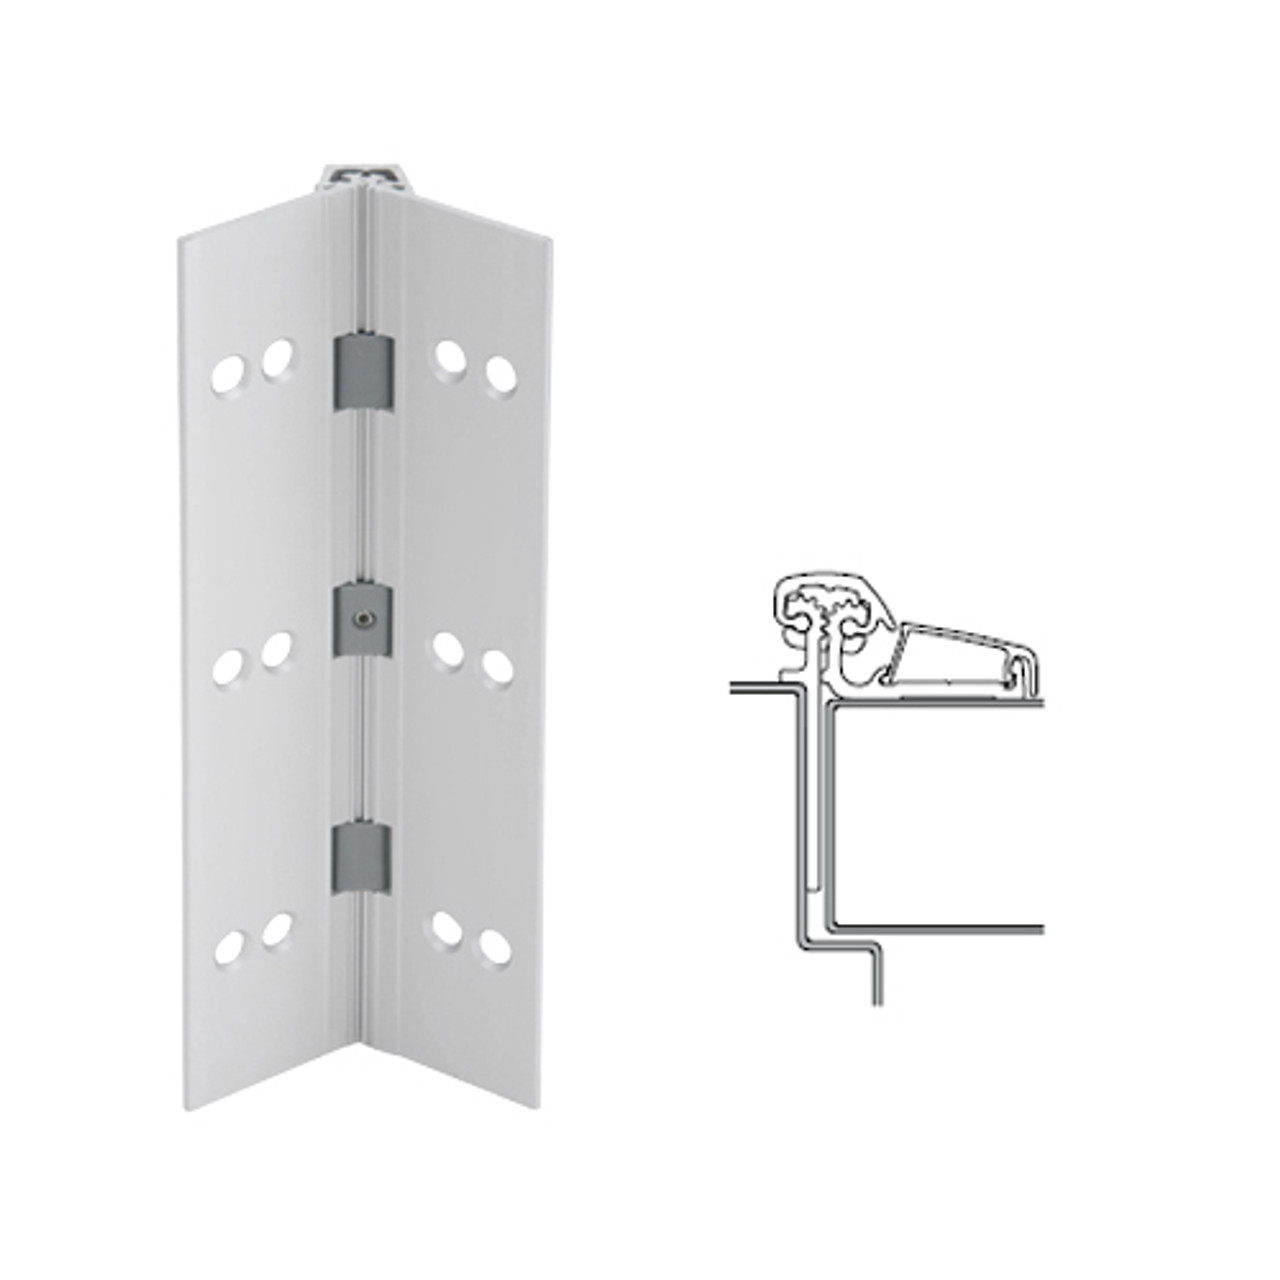 053XY-US28-120-SECWDWD IVES Adjustable Half Surface Continuous Geared Hinges with Security Screws - Hex Pin Drive in Satin Aluminum